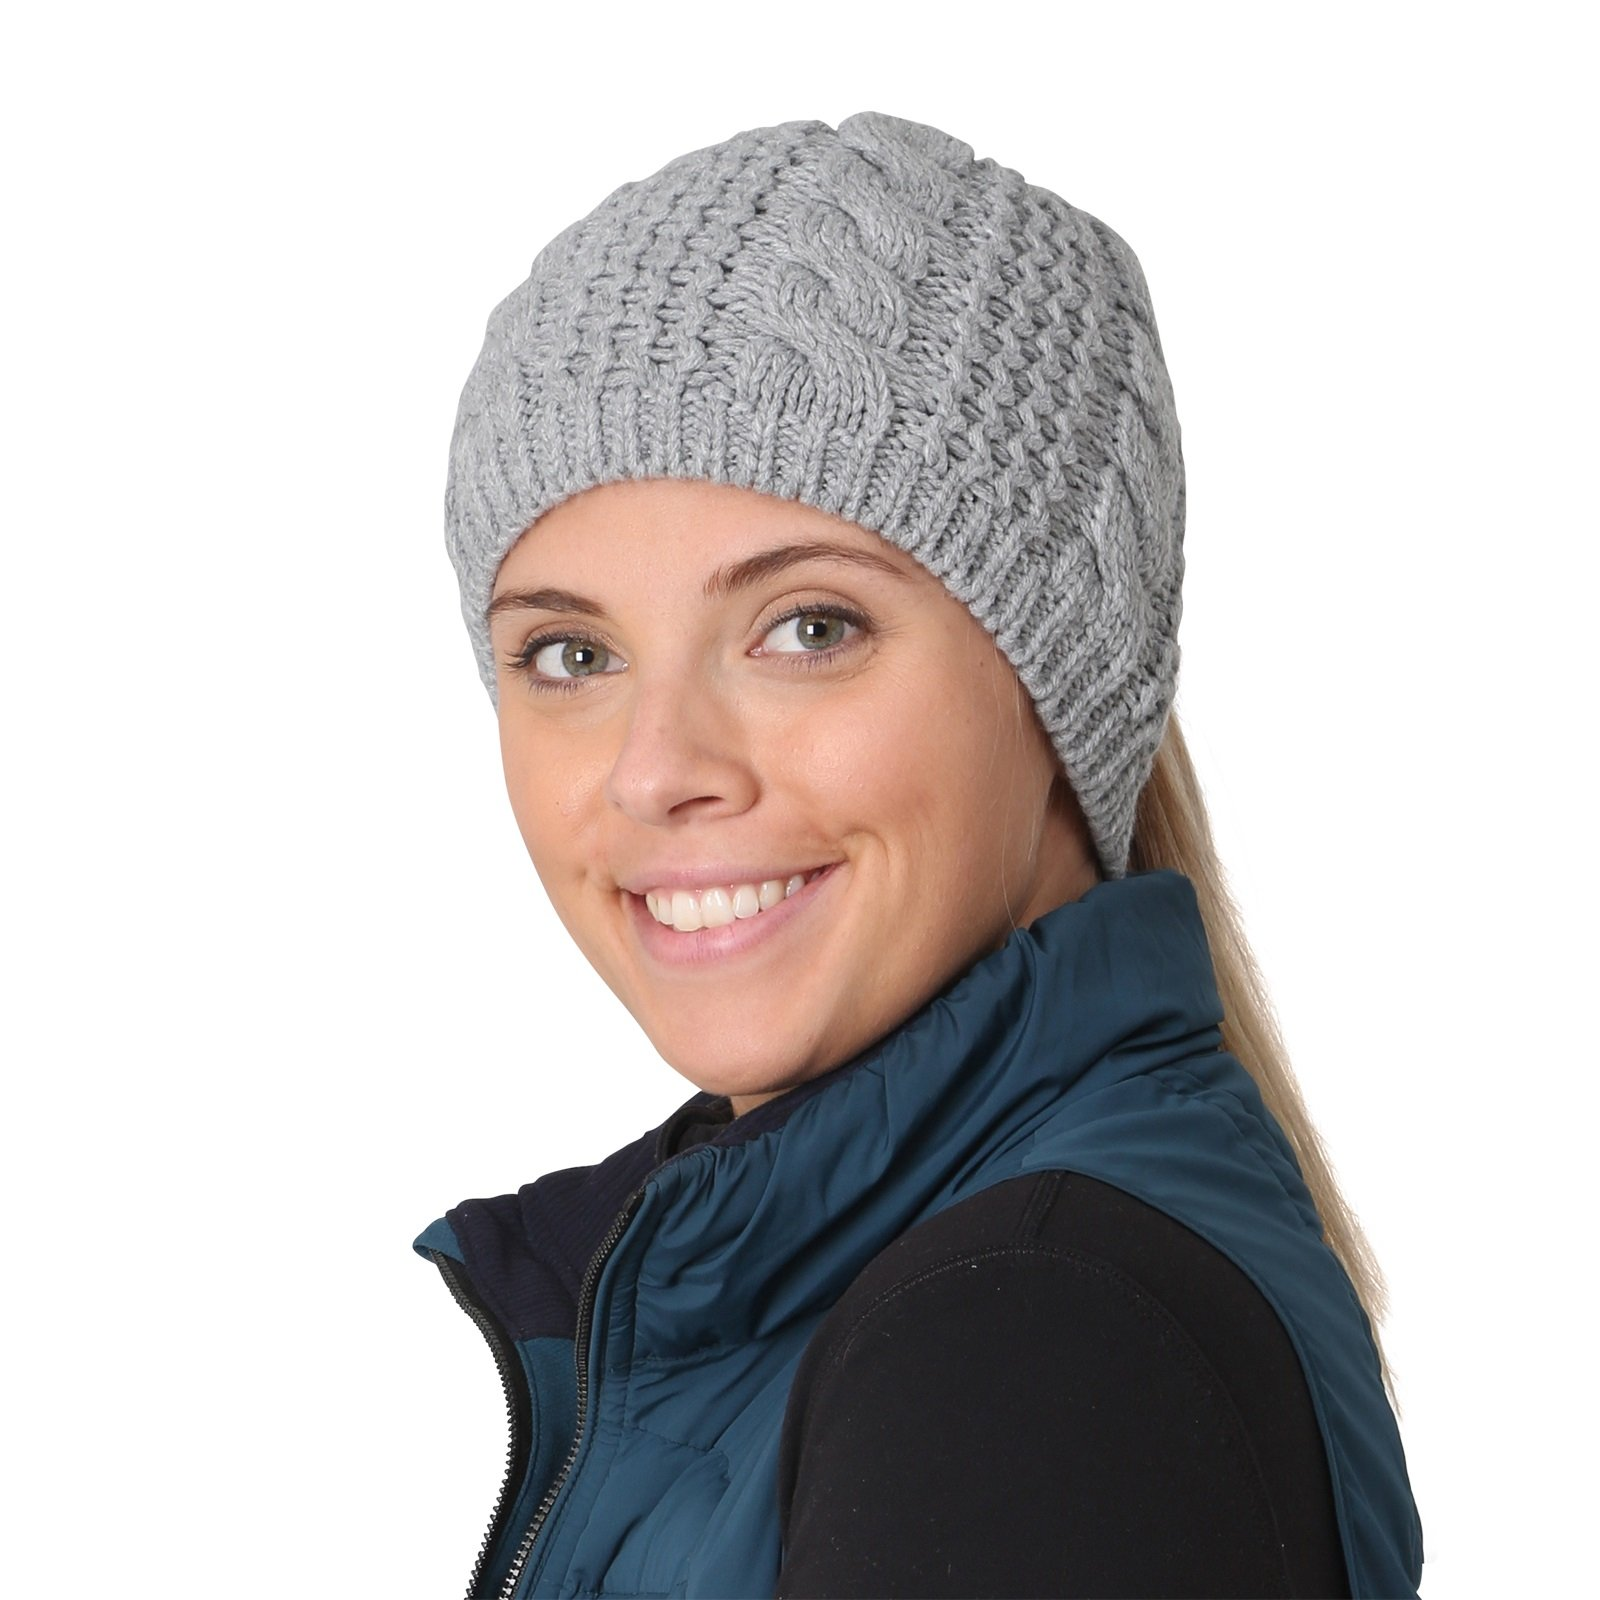 TrailHeads Women's Cable Knit Ponytail Beanie - storm grey